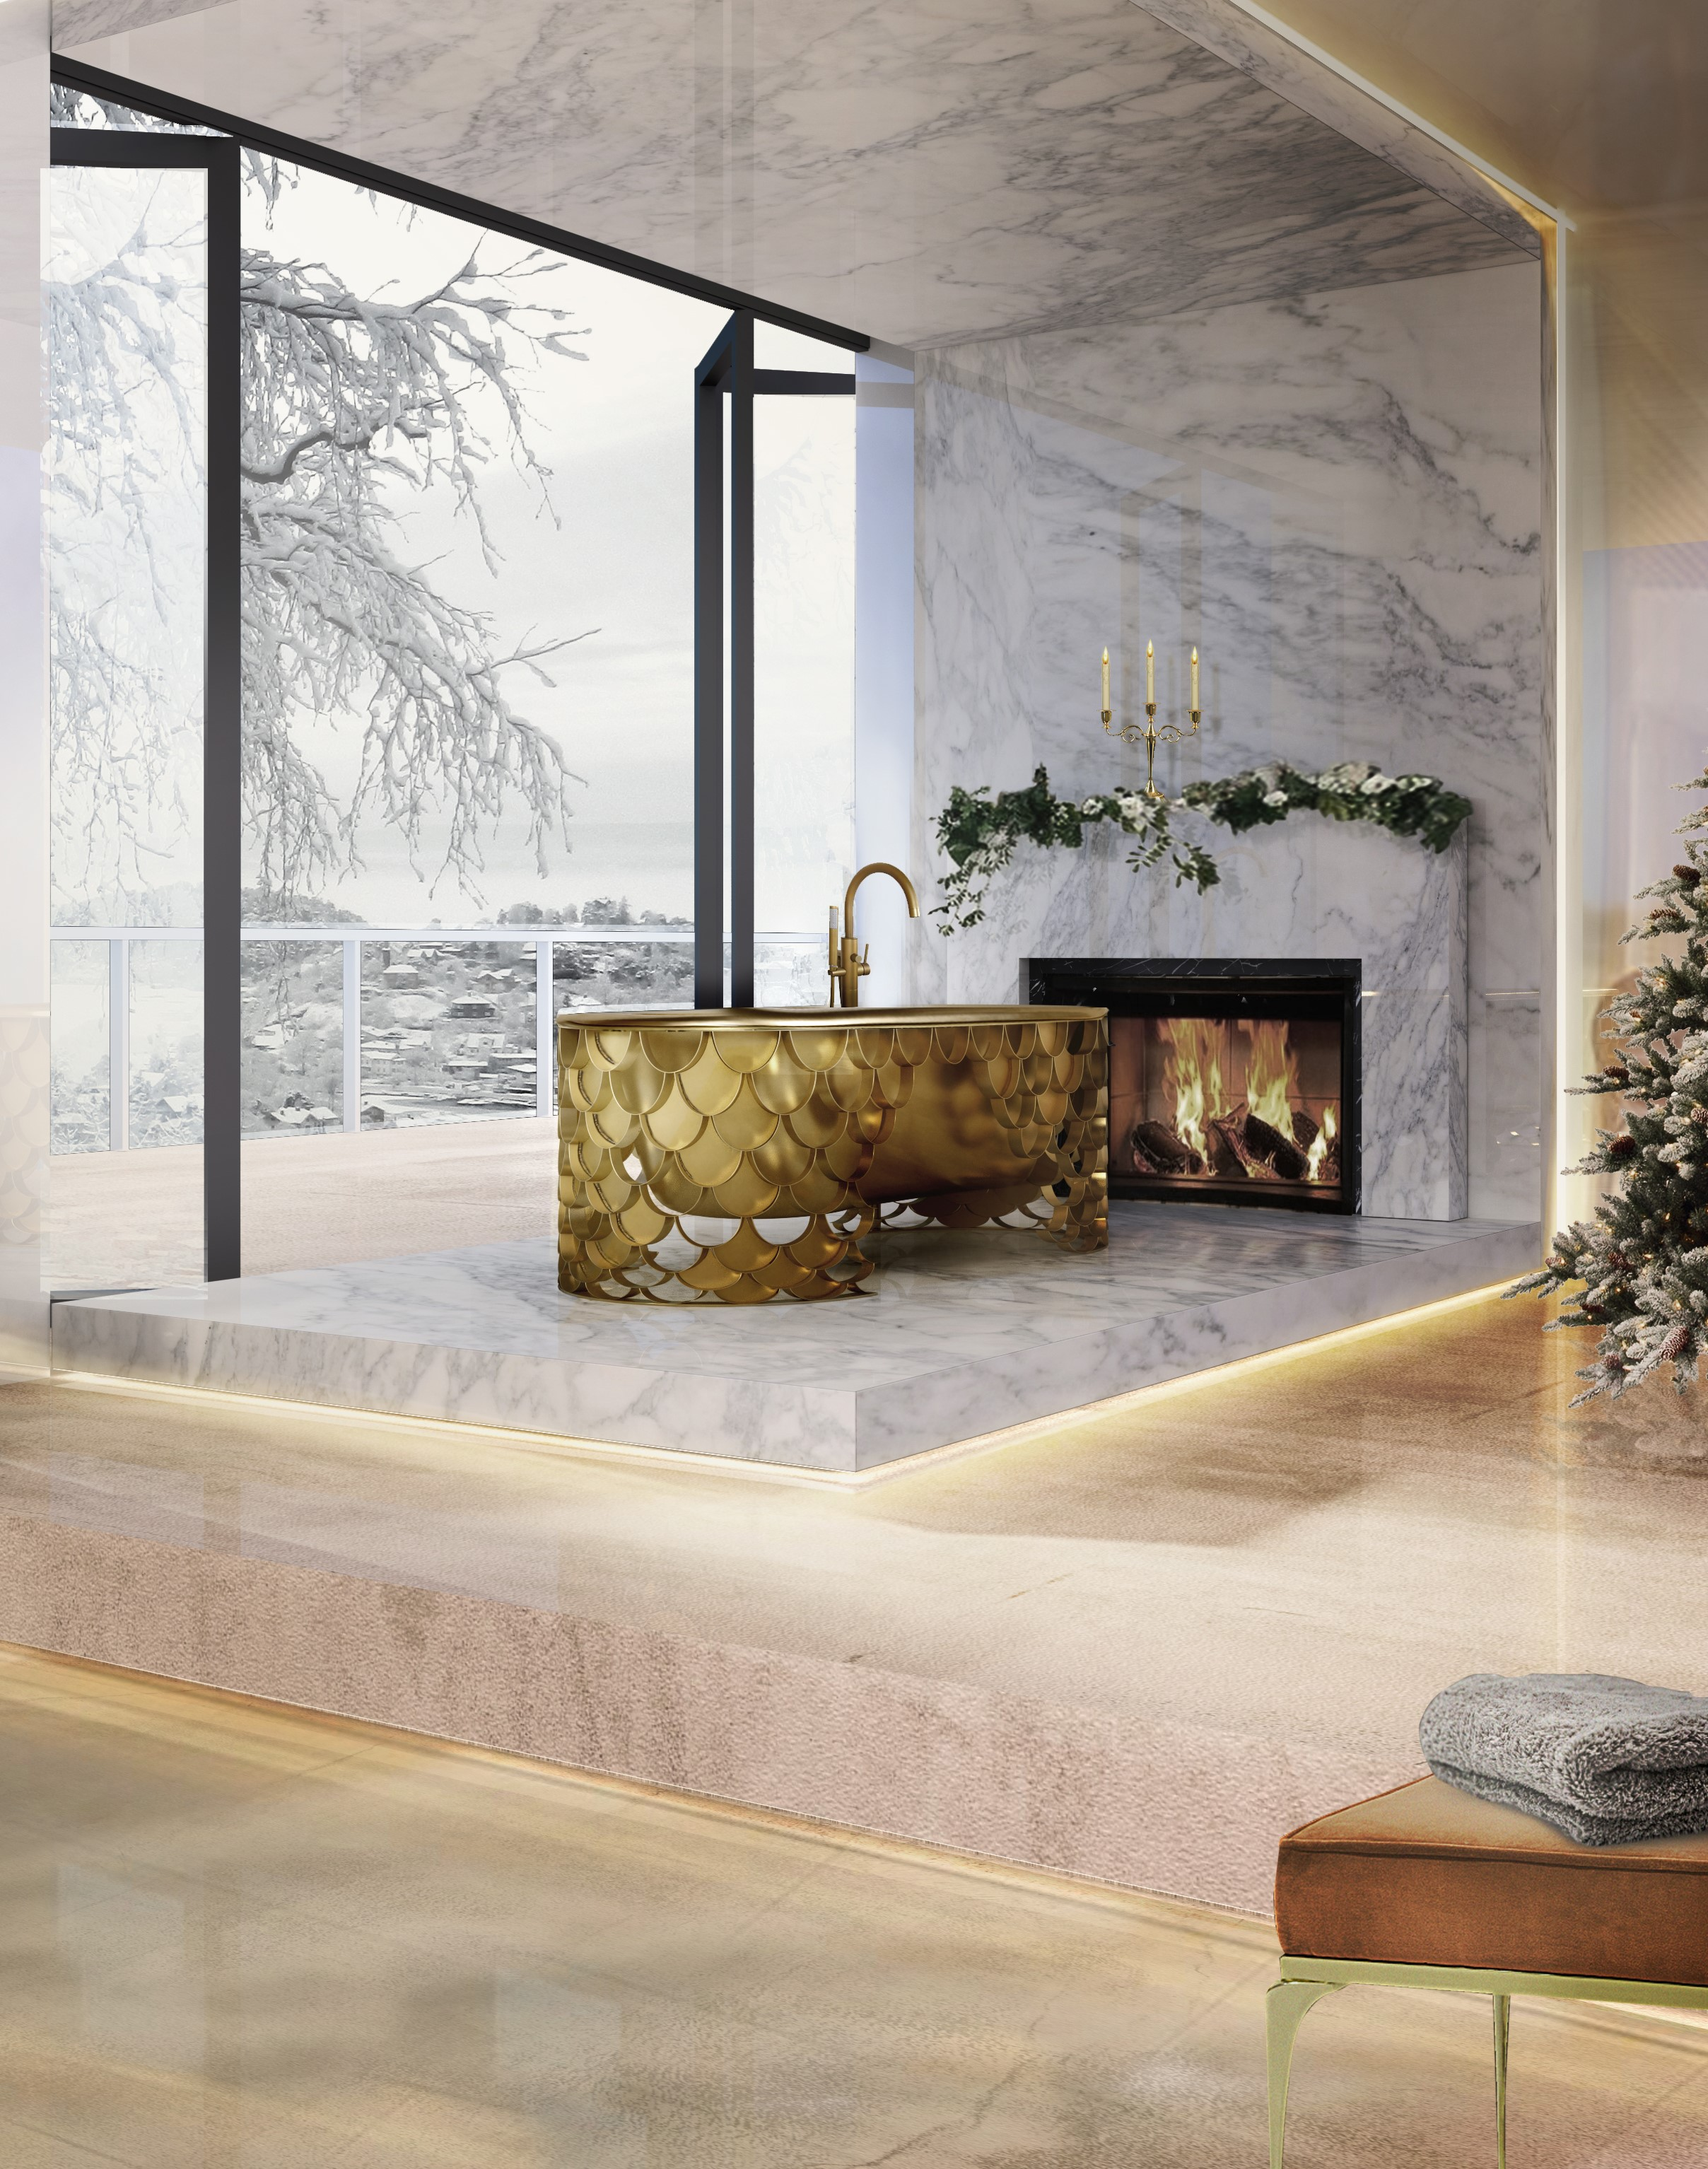 Bathroom with a fireplace, winter trends, Bathroom, Fireplace, romantic, heat, interior designers, maison valentina bathroom with a fireplace Winter Trends: Why You Should Have a Bathroom with a Fireplace 34 koi bathtub 1 HR 2